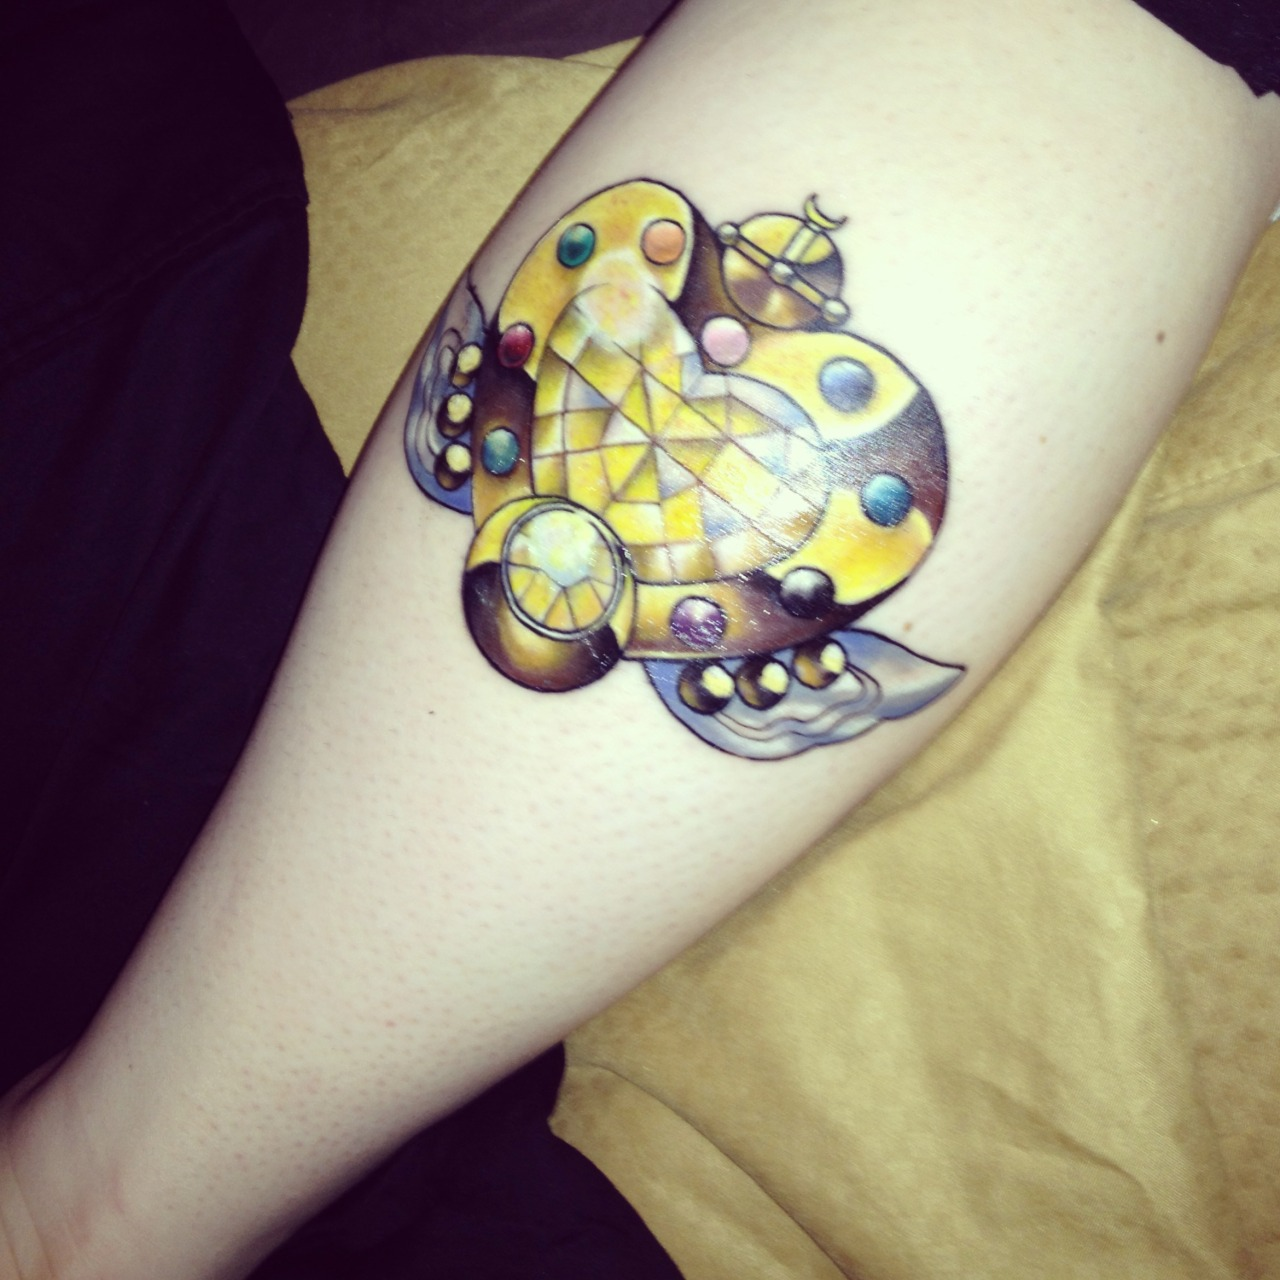 fuckyeahtattoos:  This was one of my first big tattoos (other than a small heart tattooed on my pinky) and has officially gotten me addicted to wanting more. It took me a while to settle on my first tattoo because I couldn't really find the perfect idea for what I had in mind. My grandmother, who was extremely dear to me and my absolute best friend, passed away back in April of 2005. She survived lung cancer only to have a fatal heart attack less than a month later. She took care of me quite regularly as a child. She would watch Sailor Moon with me every day with me when I was younger and I believe that is honestly what got me so interested in Sailor Moon all together! It is safe to say that I am a die-hard moonie because of her, so I decided on the final transformation brooch that appears in the anime (not the manga). The Eternal Moon Article! I felt that this brooch seemed quite appropriate for my eternal love for both my grandmother and Sailor Moon! ♥ Done by James Hurley at Roustabout Tattoo & Body Piercing in Cookeville, Tennessee. (Now works at Eclectic Art Tattoo Gallery in Lansing, Michigan) https://www.facebook.com/james.hurley.3572